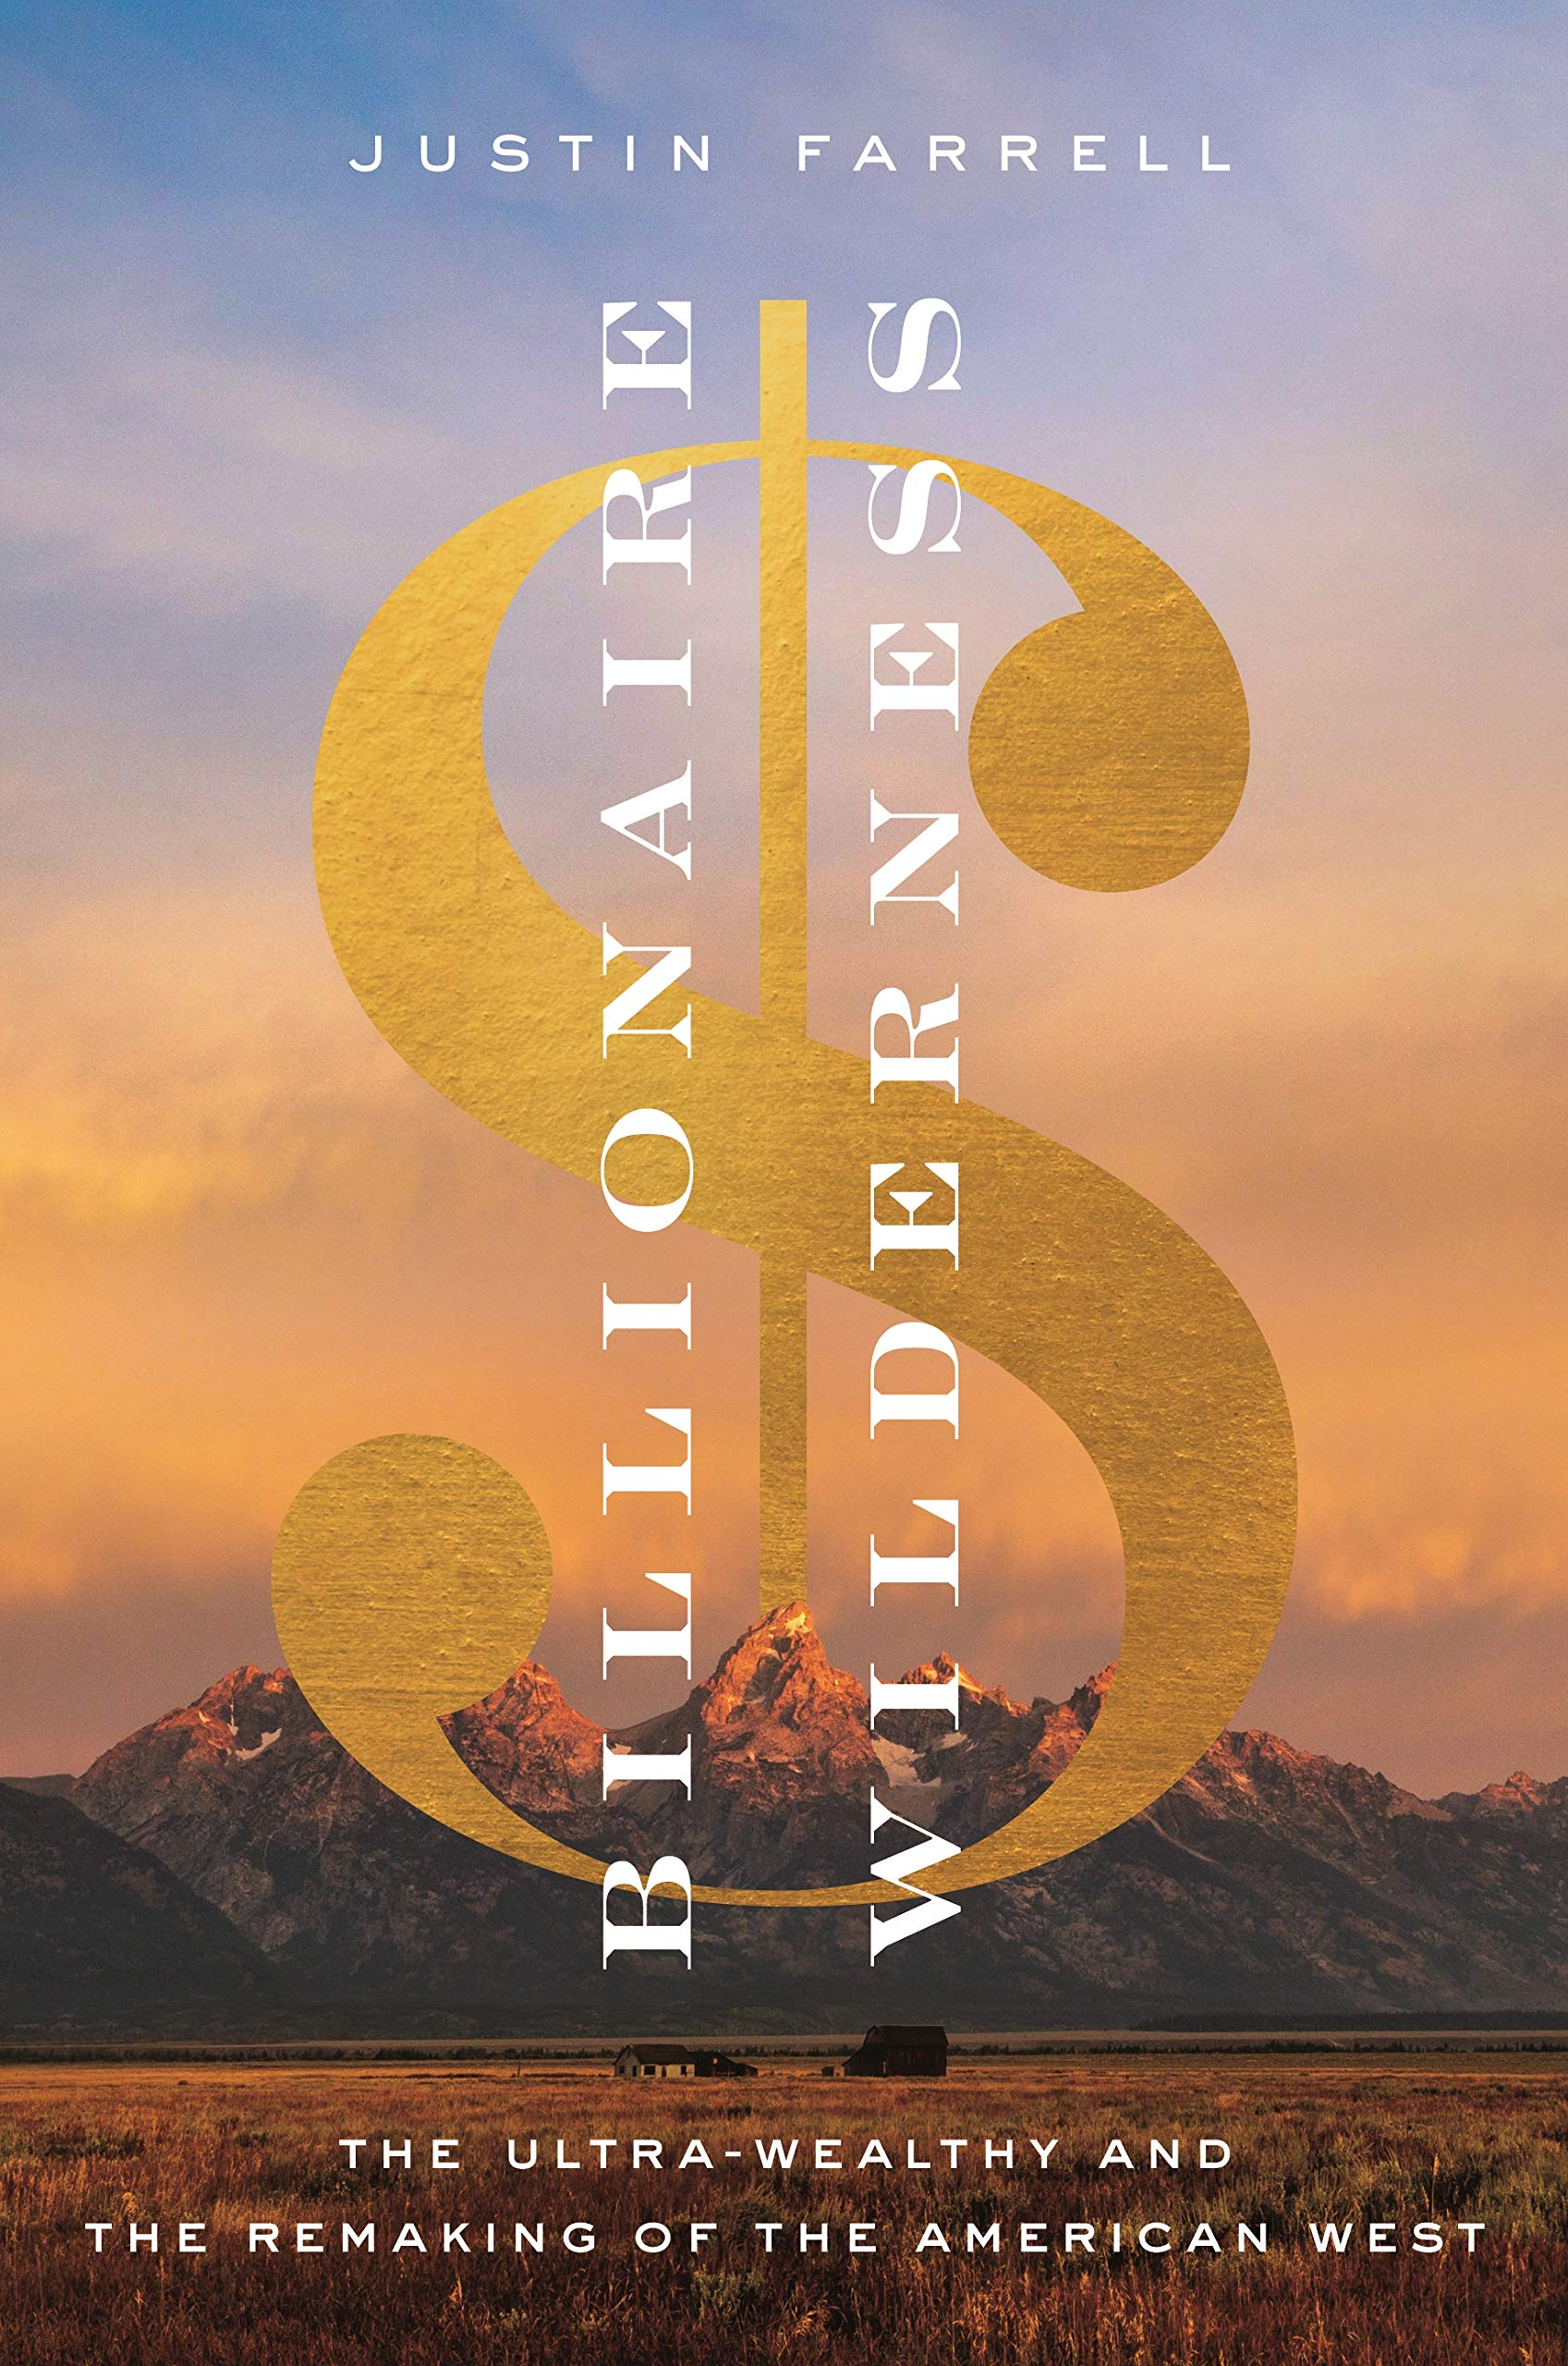 Justin Farrell. Billionaire Wilderness: The Ultra-Wealthy and the Remaking of the American West.